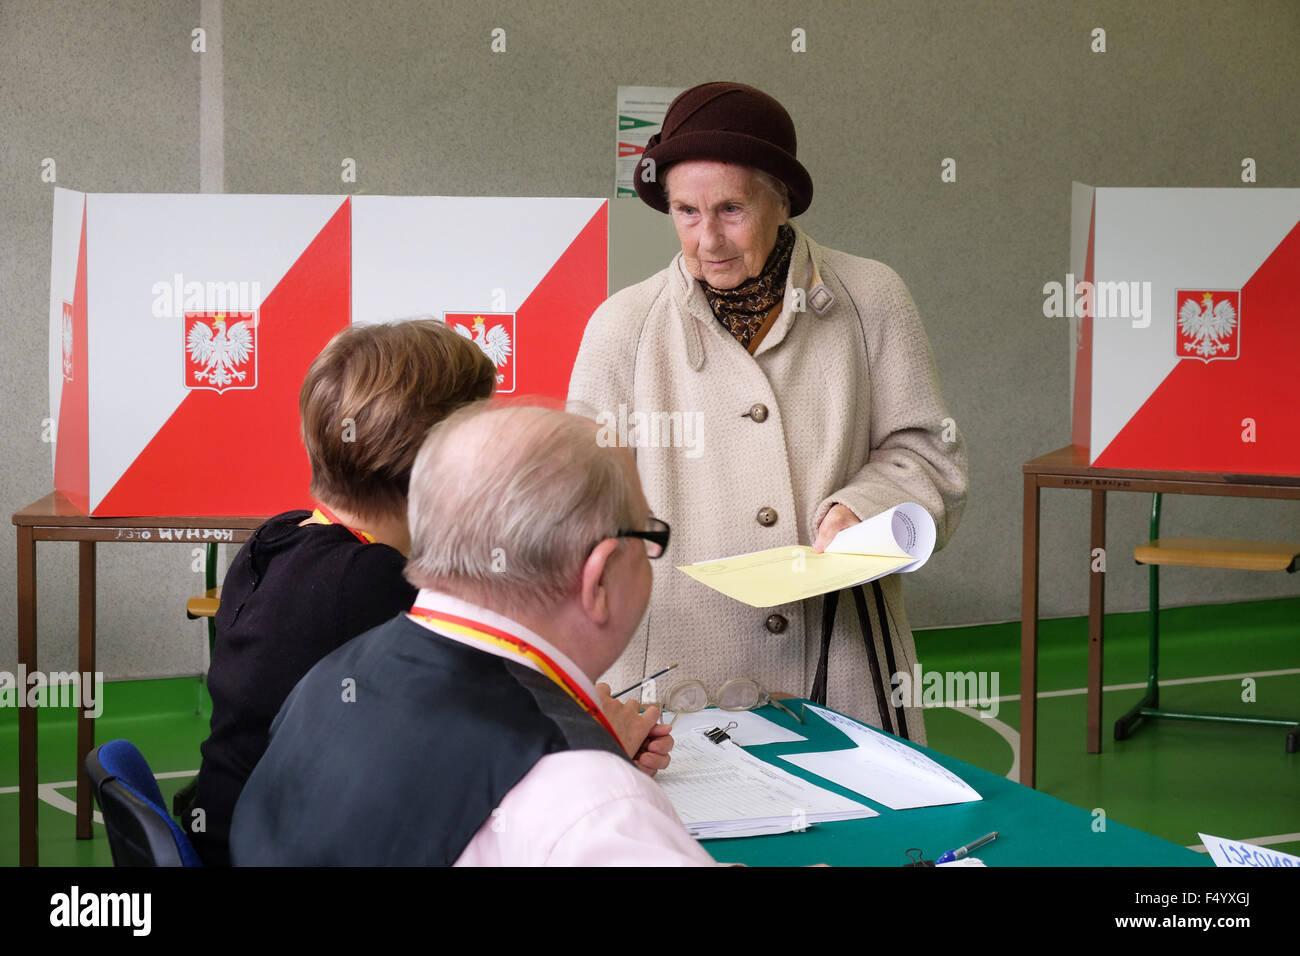 Warsaw, Poland - Sunday 25th October 2015 - National parliamentary election - Voters attend an election polling - Stock Image